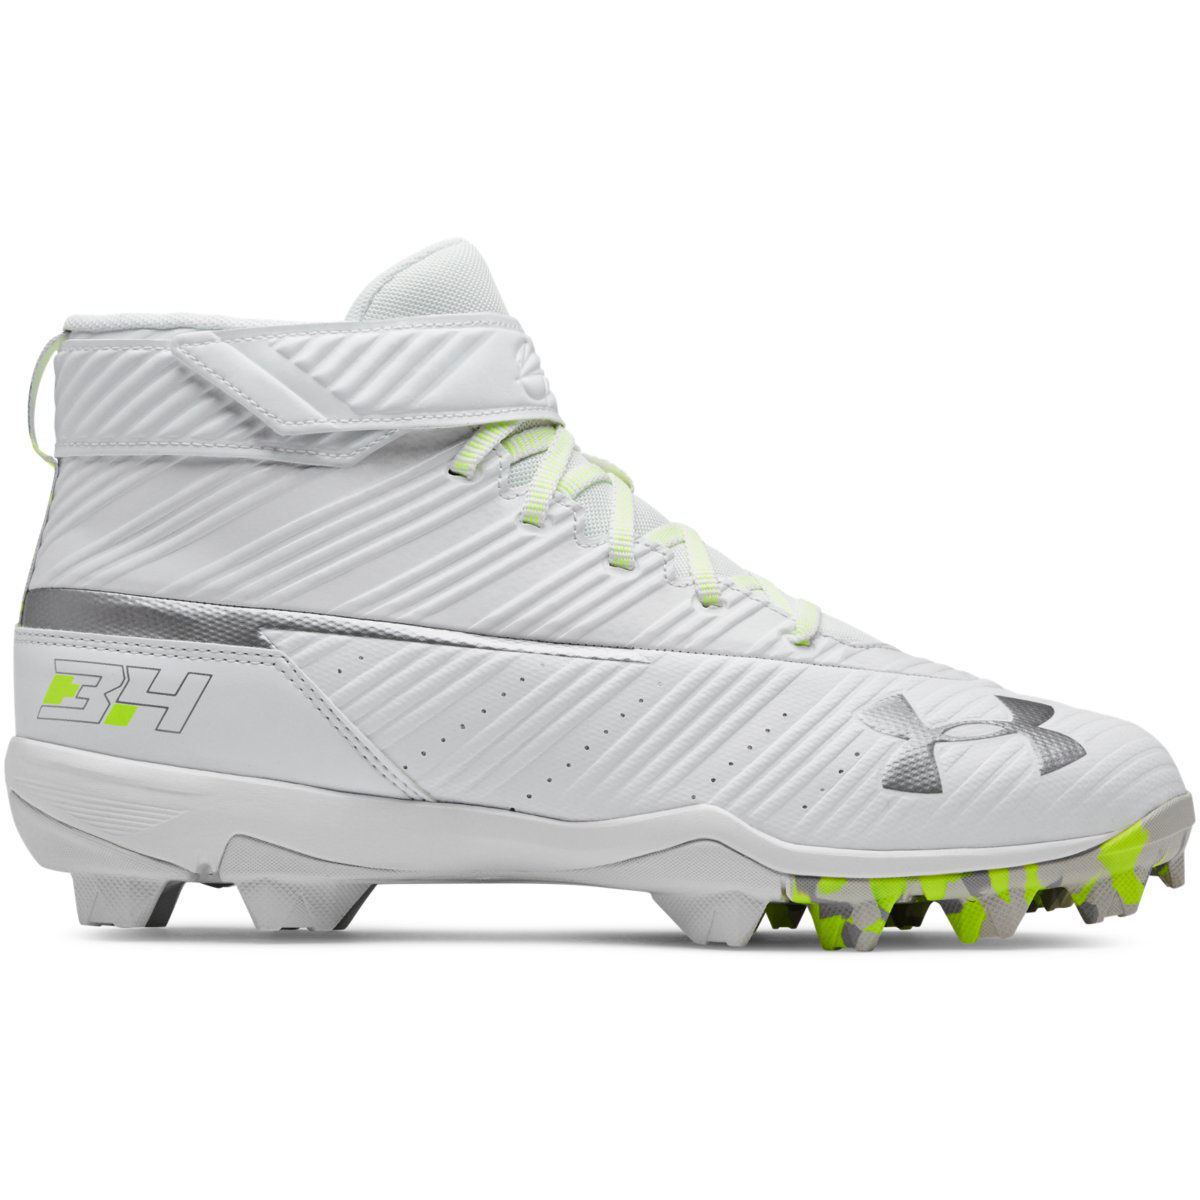 Under Armour Harper 3 Mid RM Mens Baseball Cleat